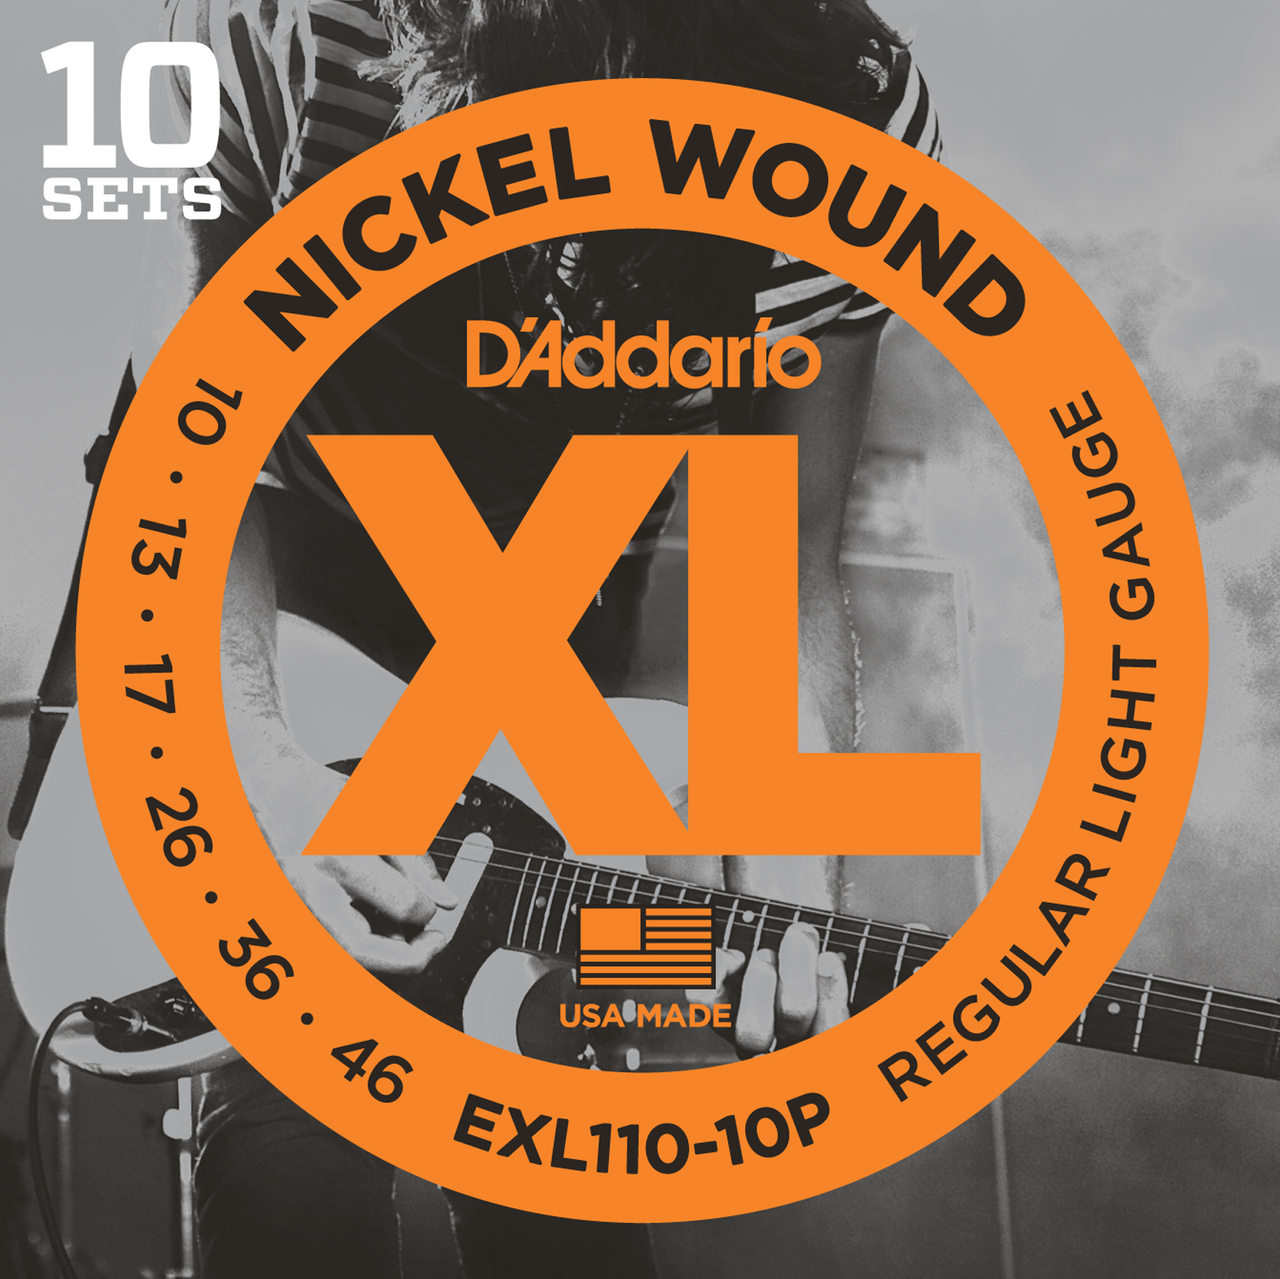 D'addario EXL110 Regular Light Guitar Strings 10 sets Pro Pack